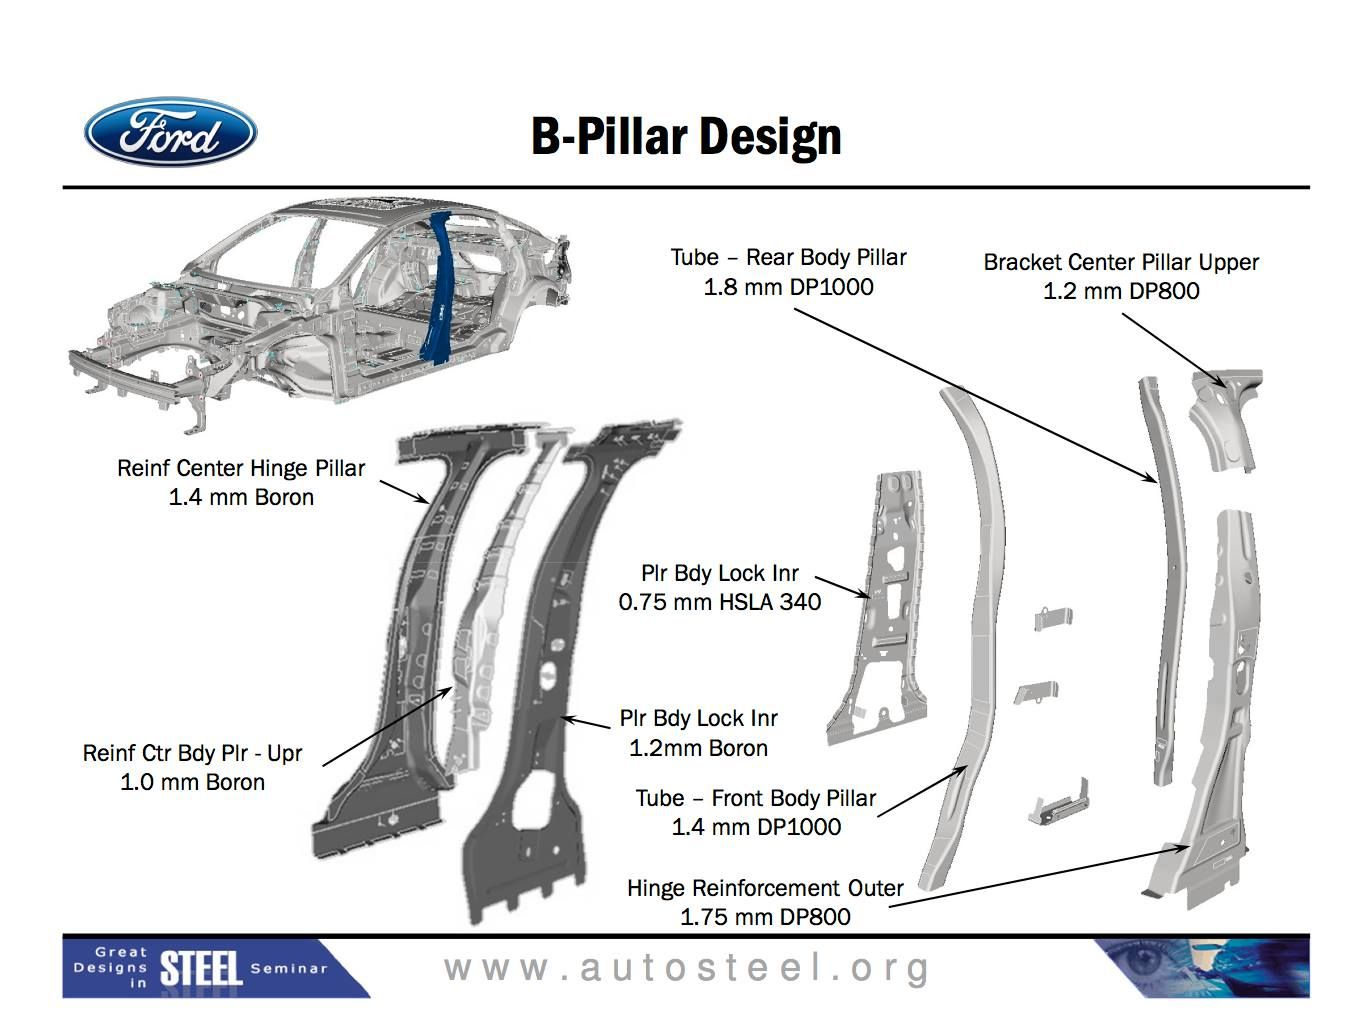 hight resolution of 2014 ford fusion b pillar body closures biw extrication